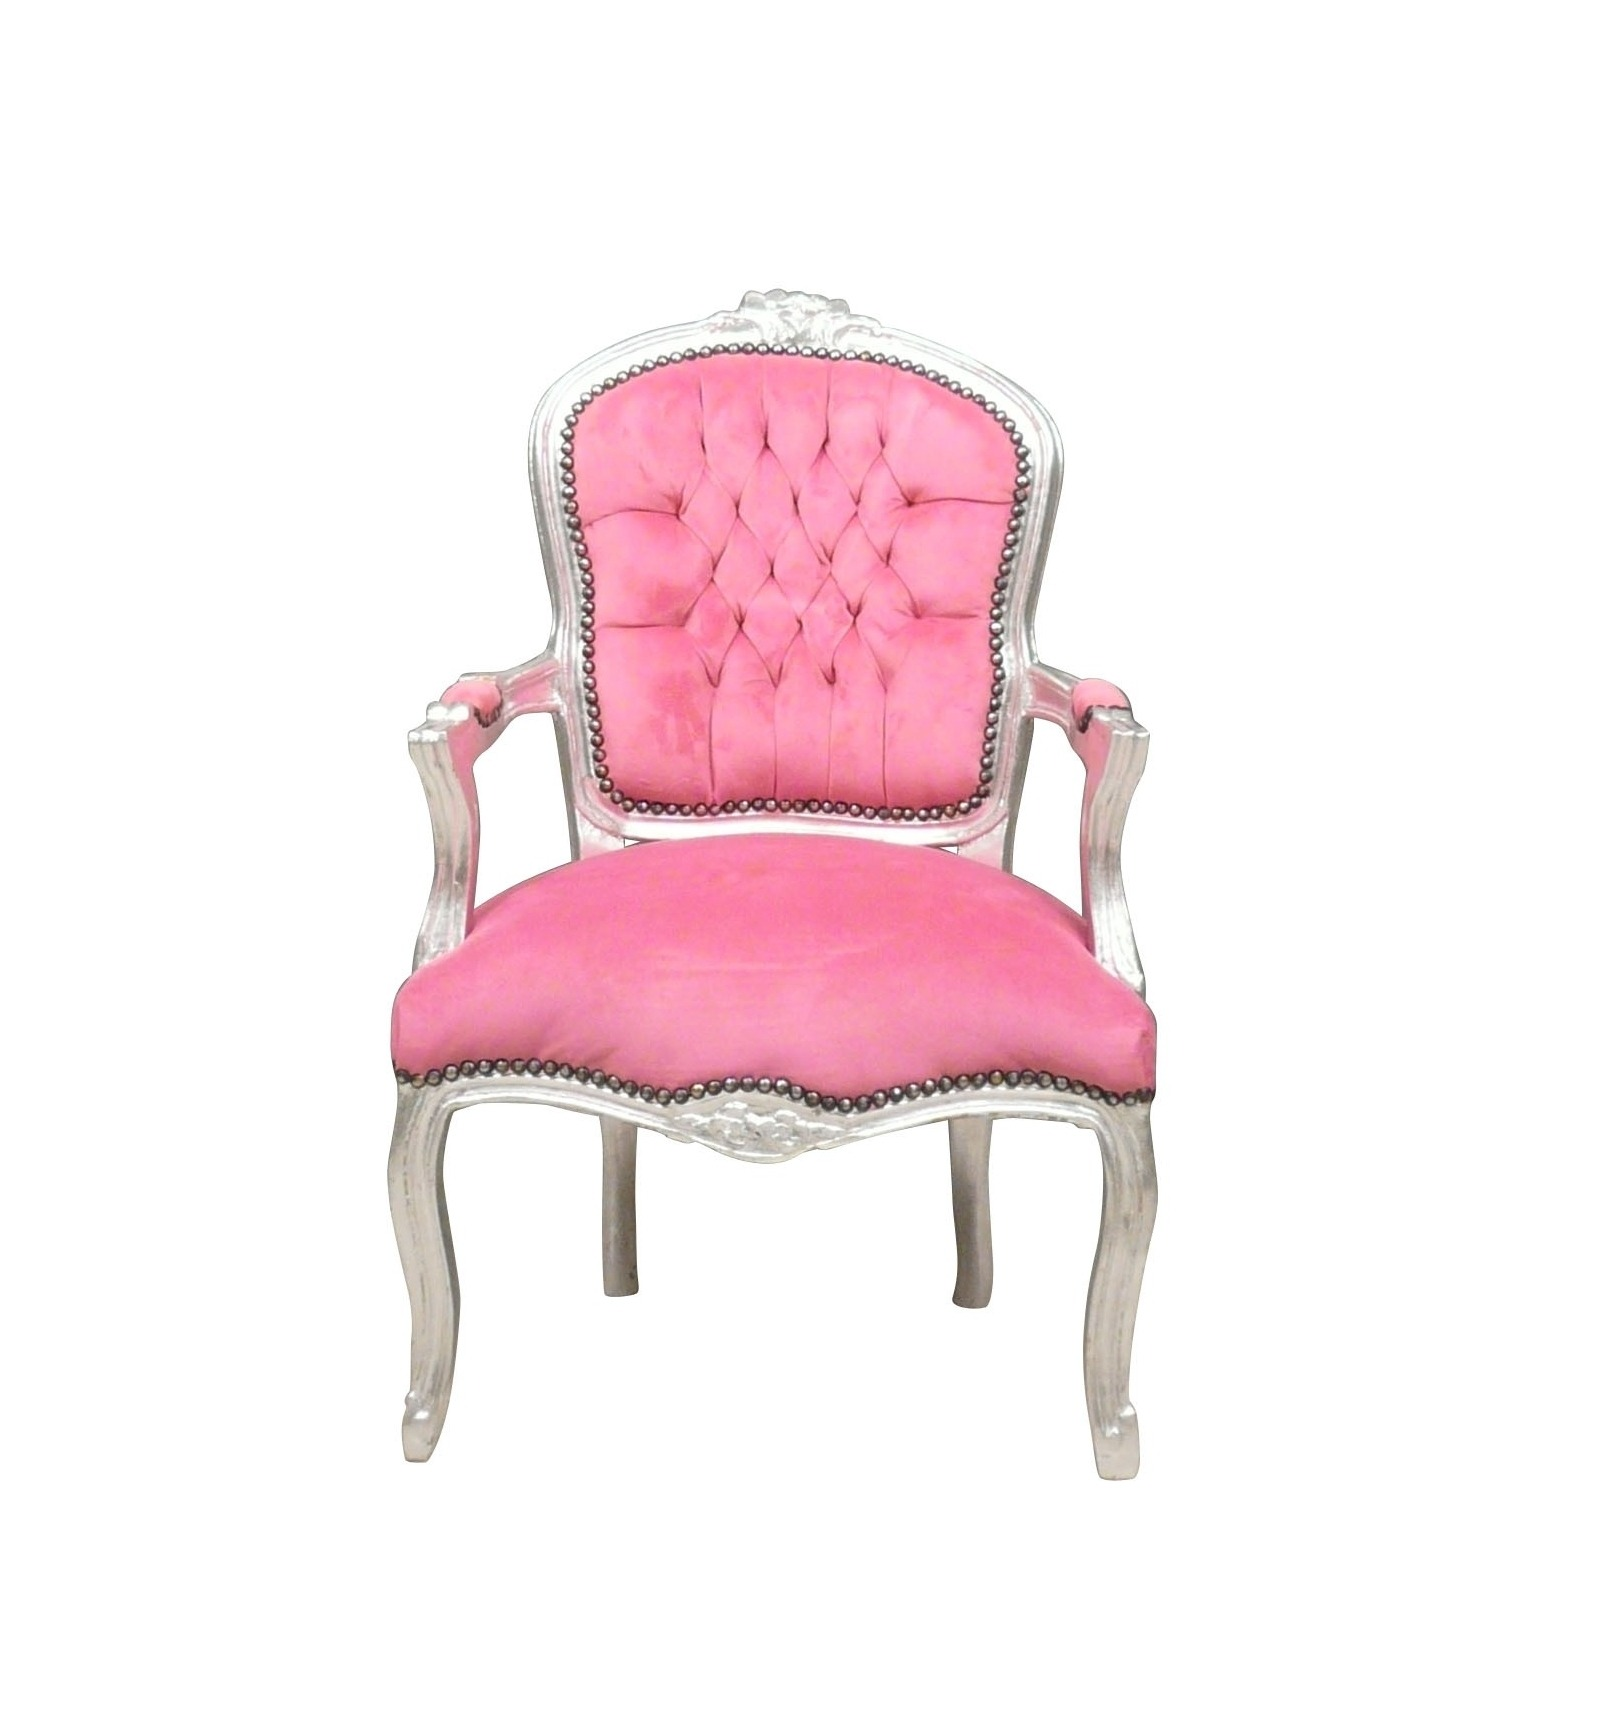 Louis Xv Armchair And Pink Wood Silver Furniture Louis Xv